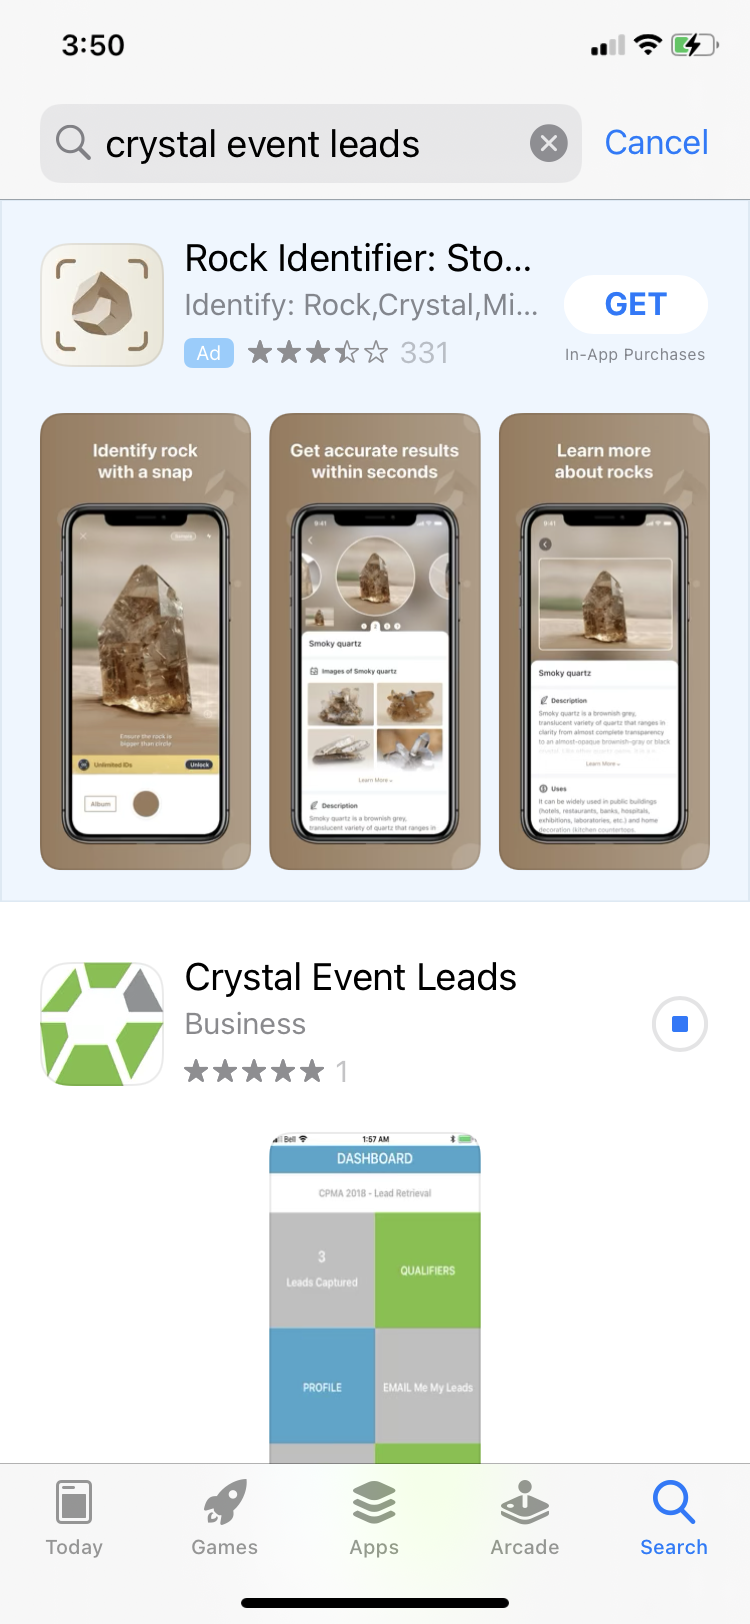 Crystal Event Leads